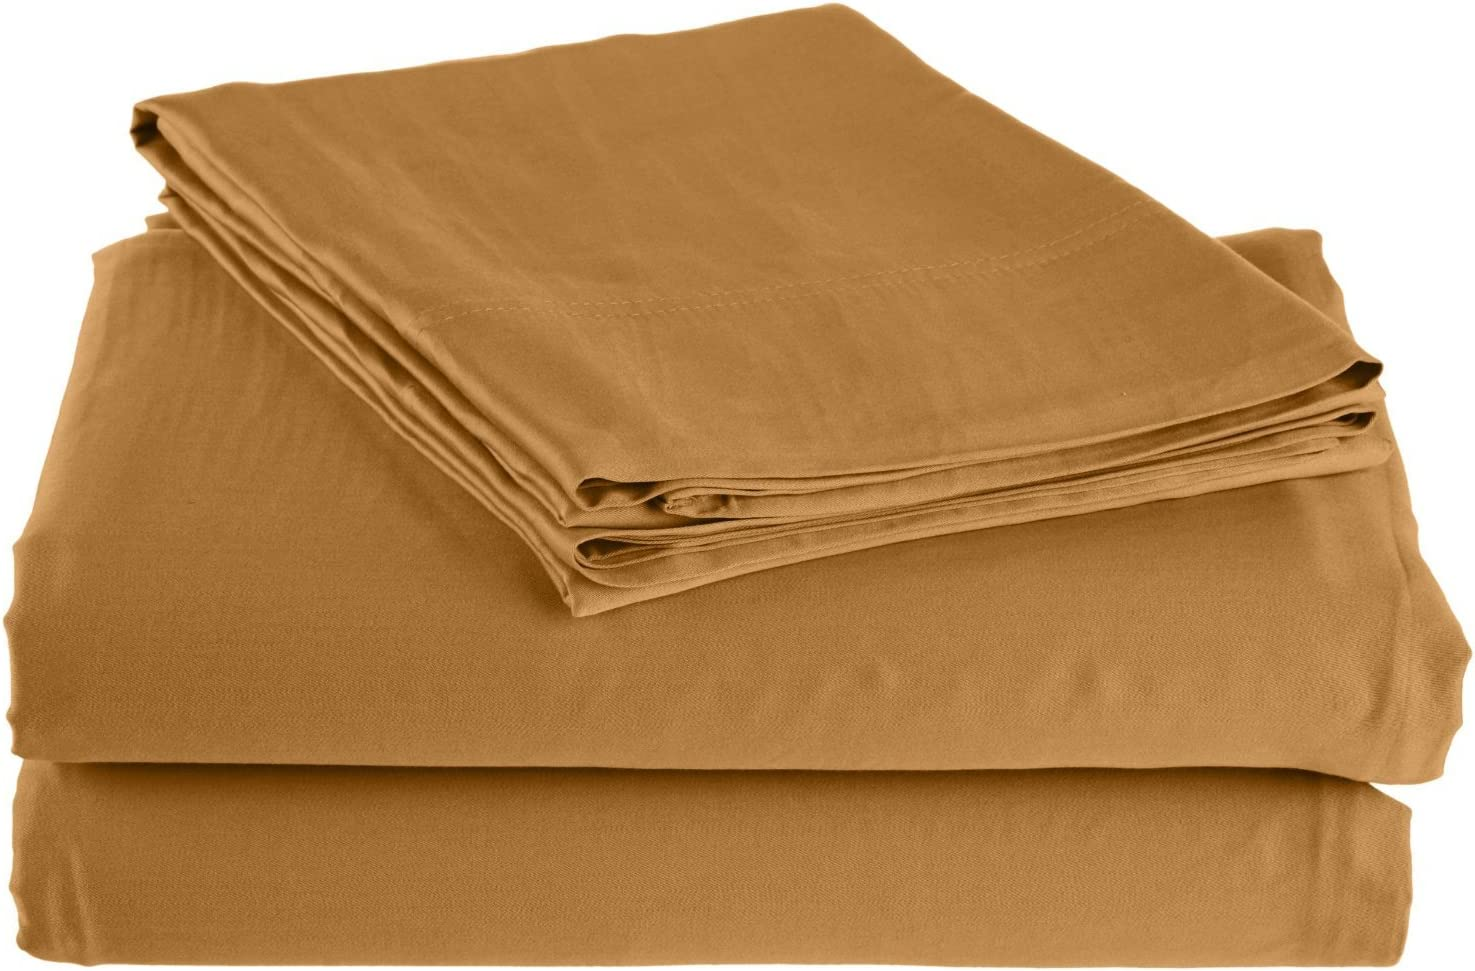 SUPERIOR Finally resale start Ultra Limited time for free shipping Soft 300-Thread-Count Sheet Rayon Set from Bambo